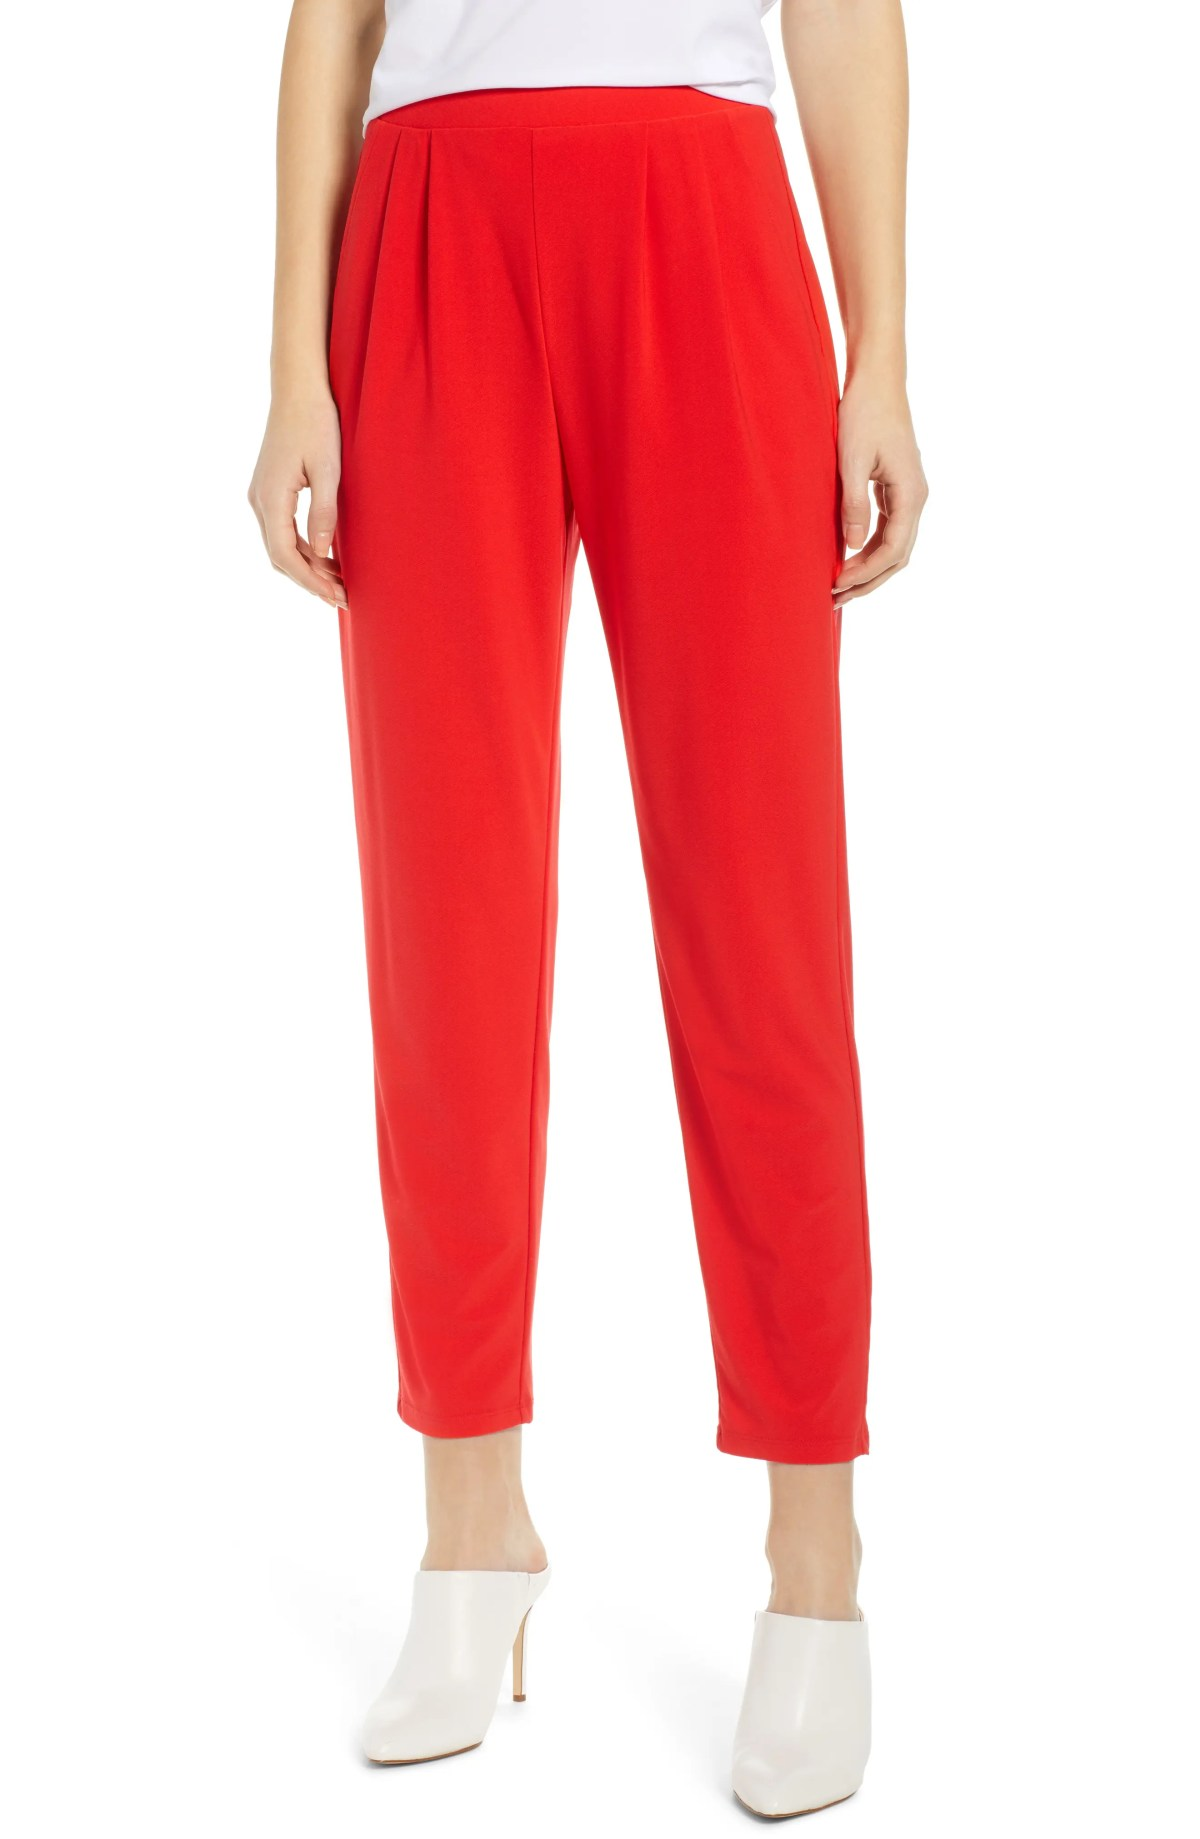 LEITH Pleat Front Trousers, Main, color, RED SCARLET